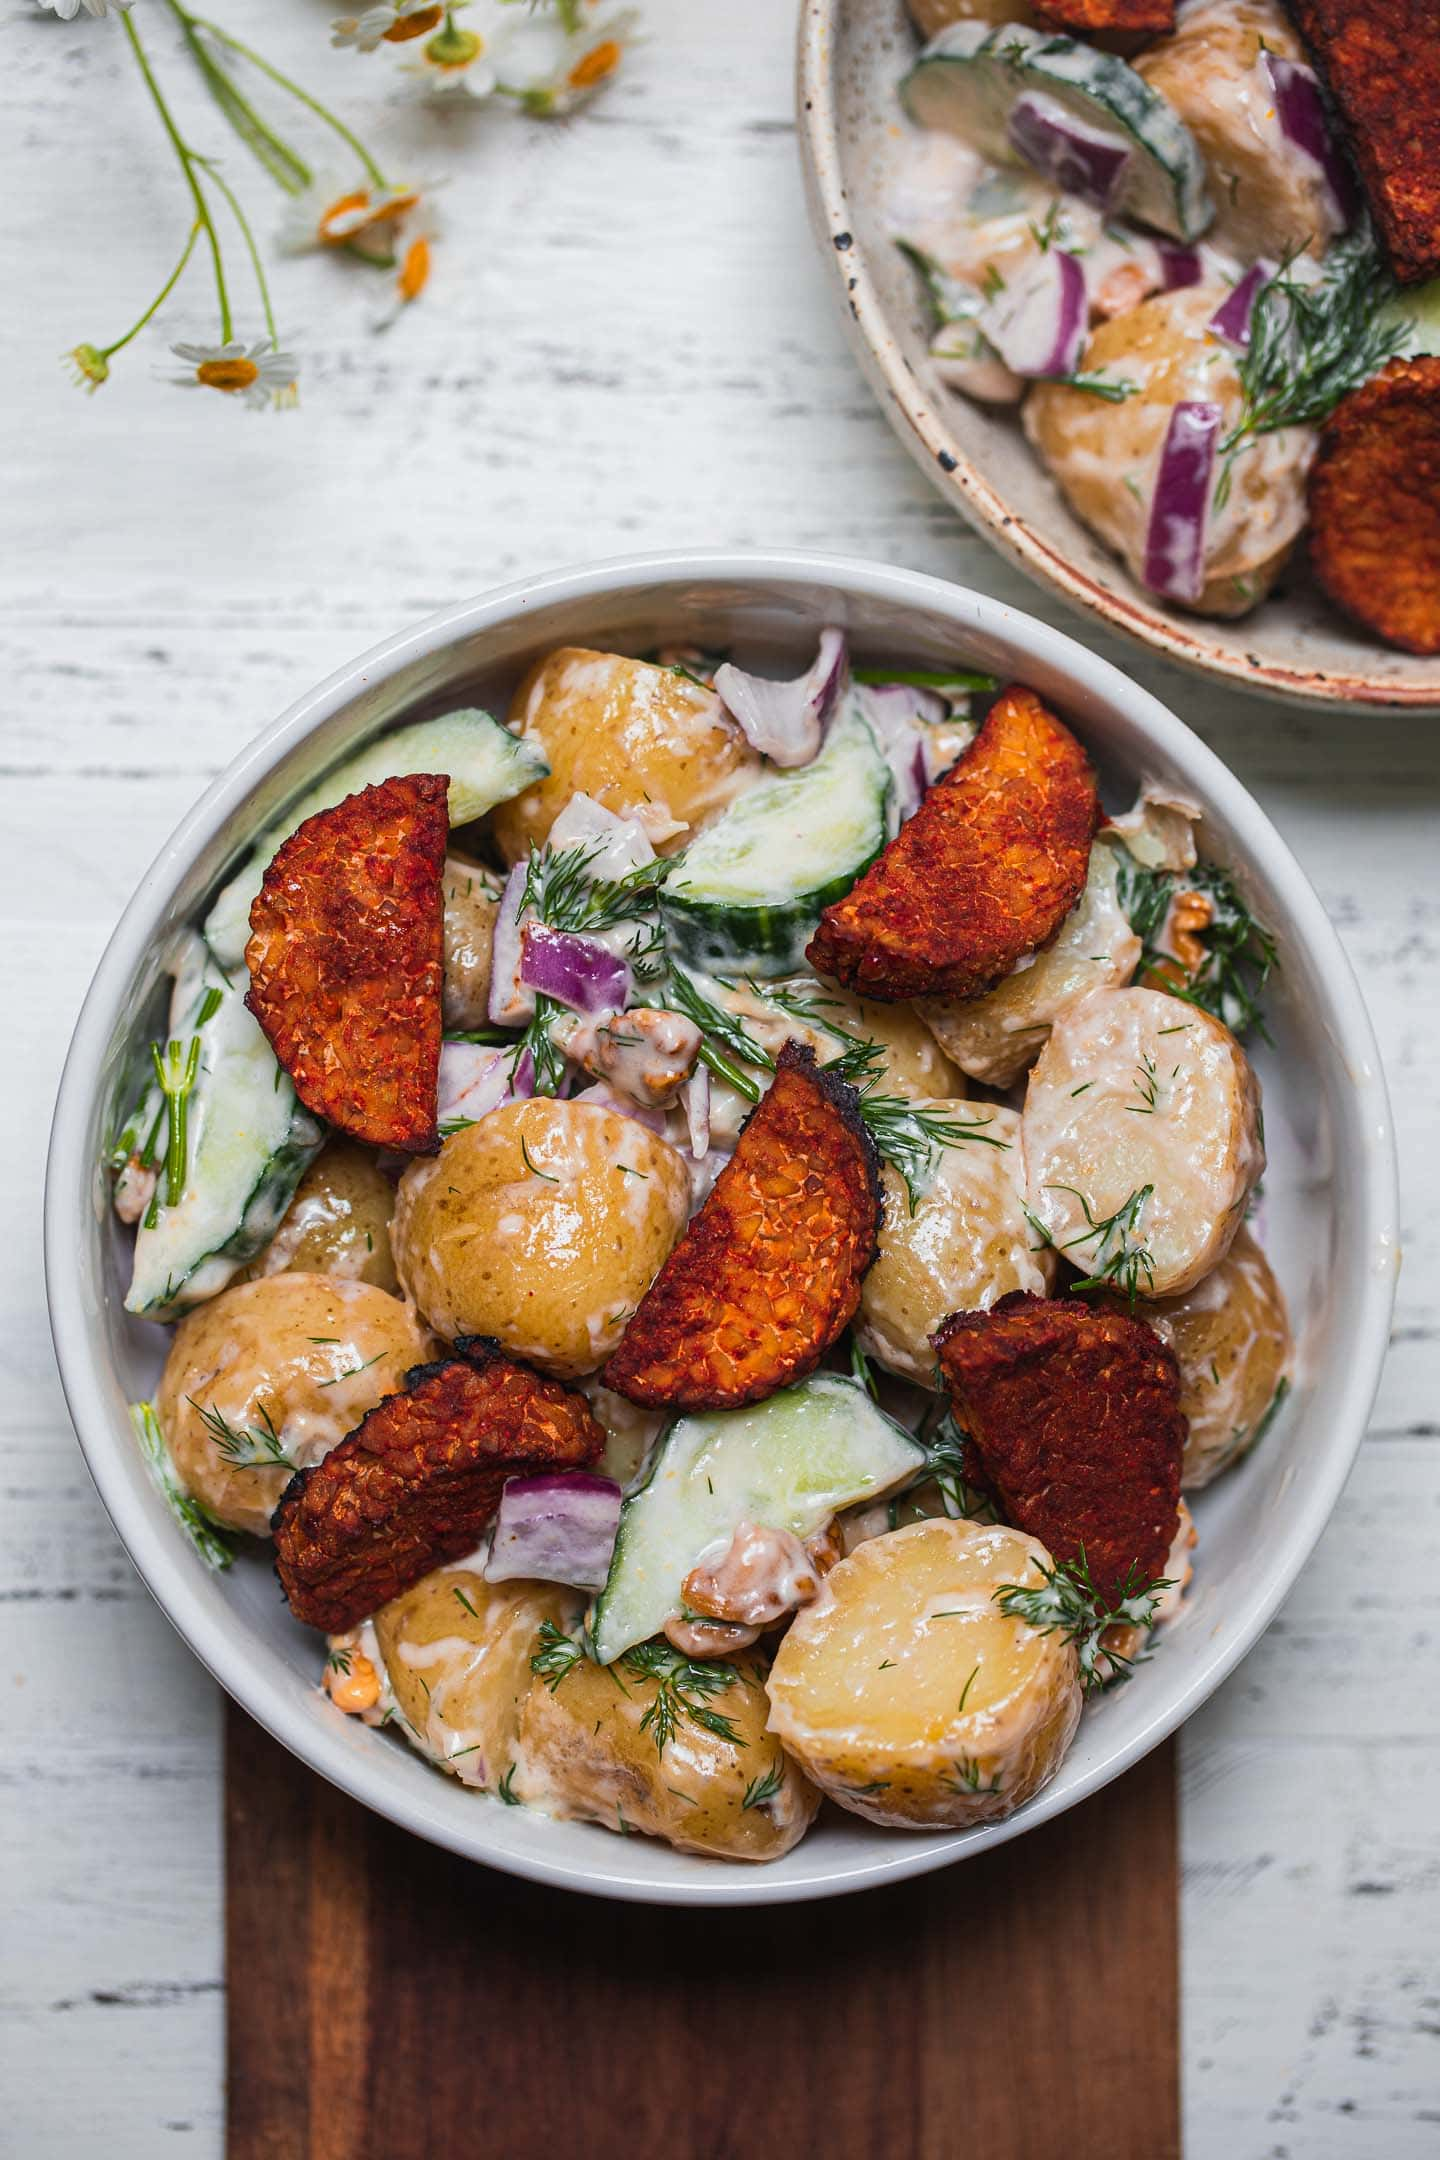 Bowl of a potato salad with vegan mayonnaise and tempeh